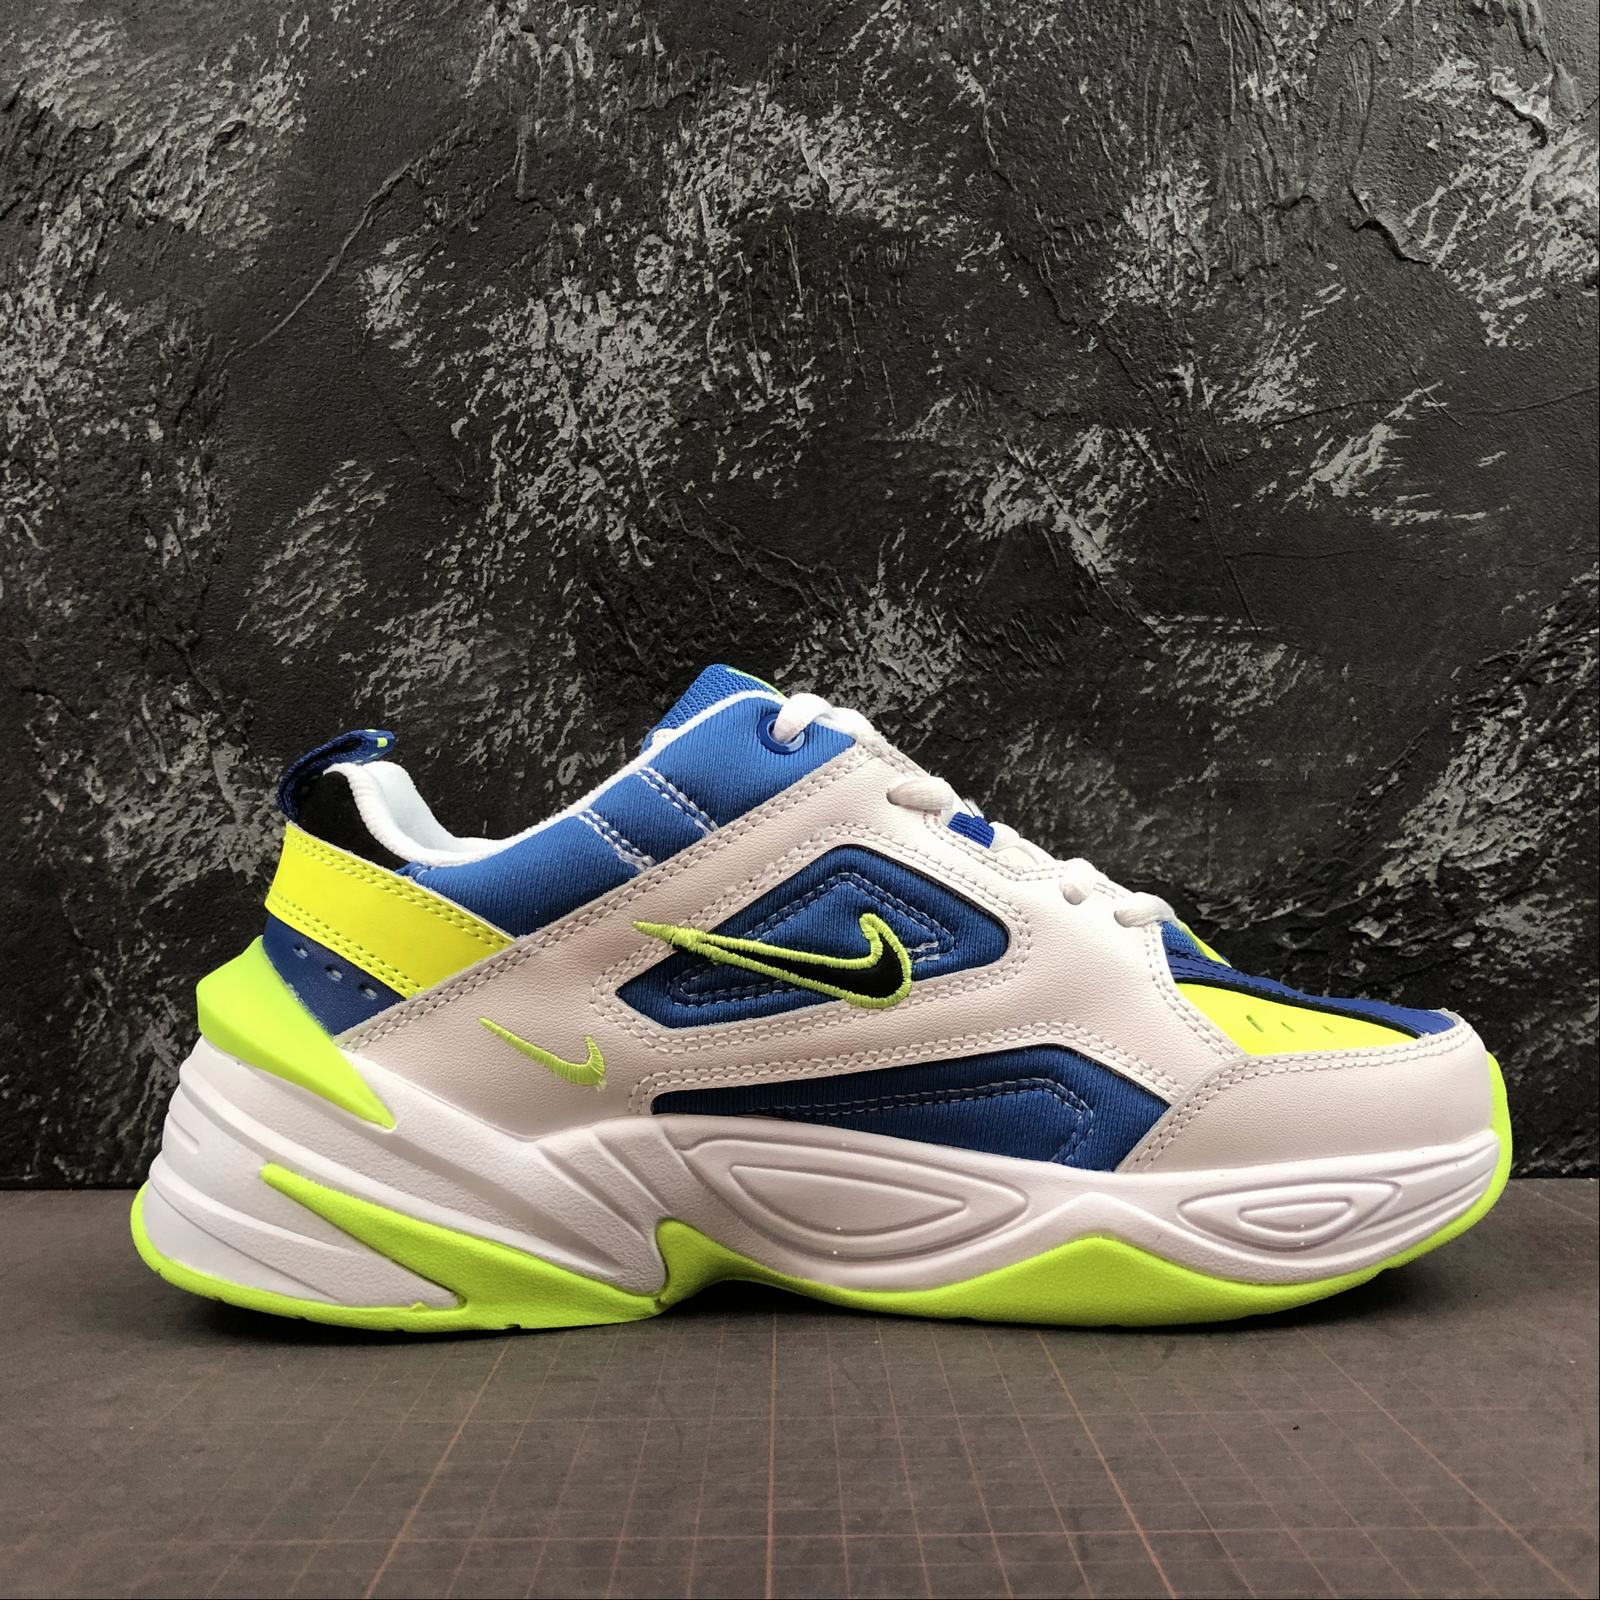 Мужские кроссовки Nike M2K Tekno Men White,Blue,Yellow - фото №2